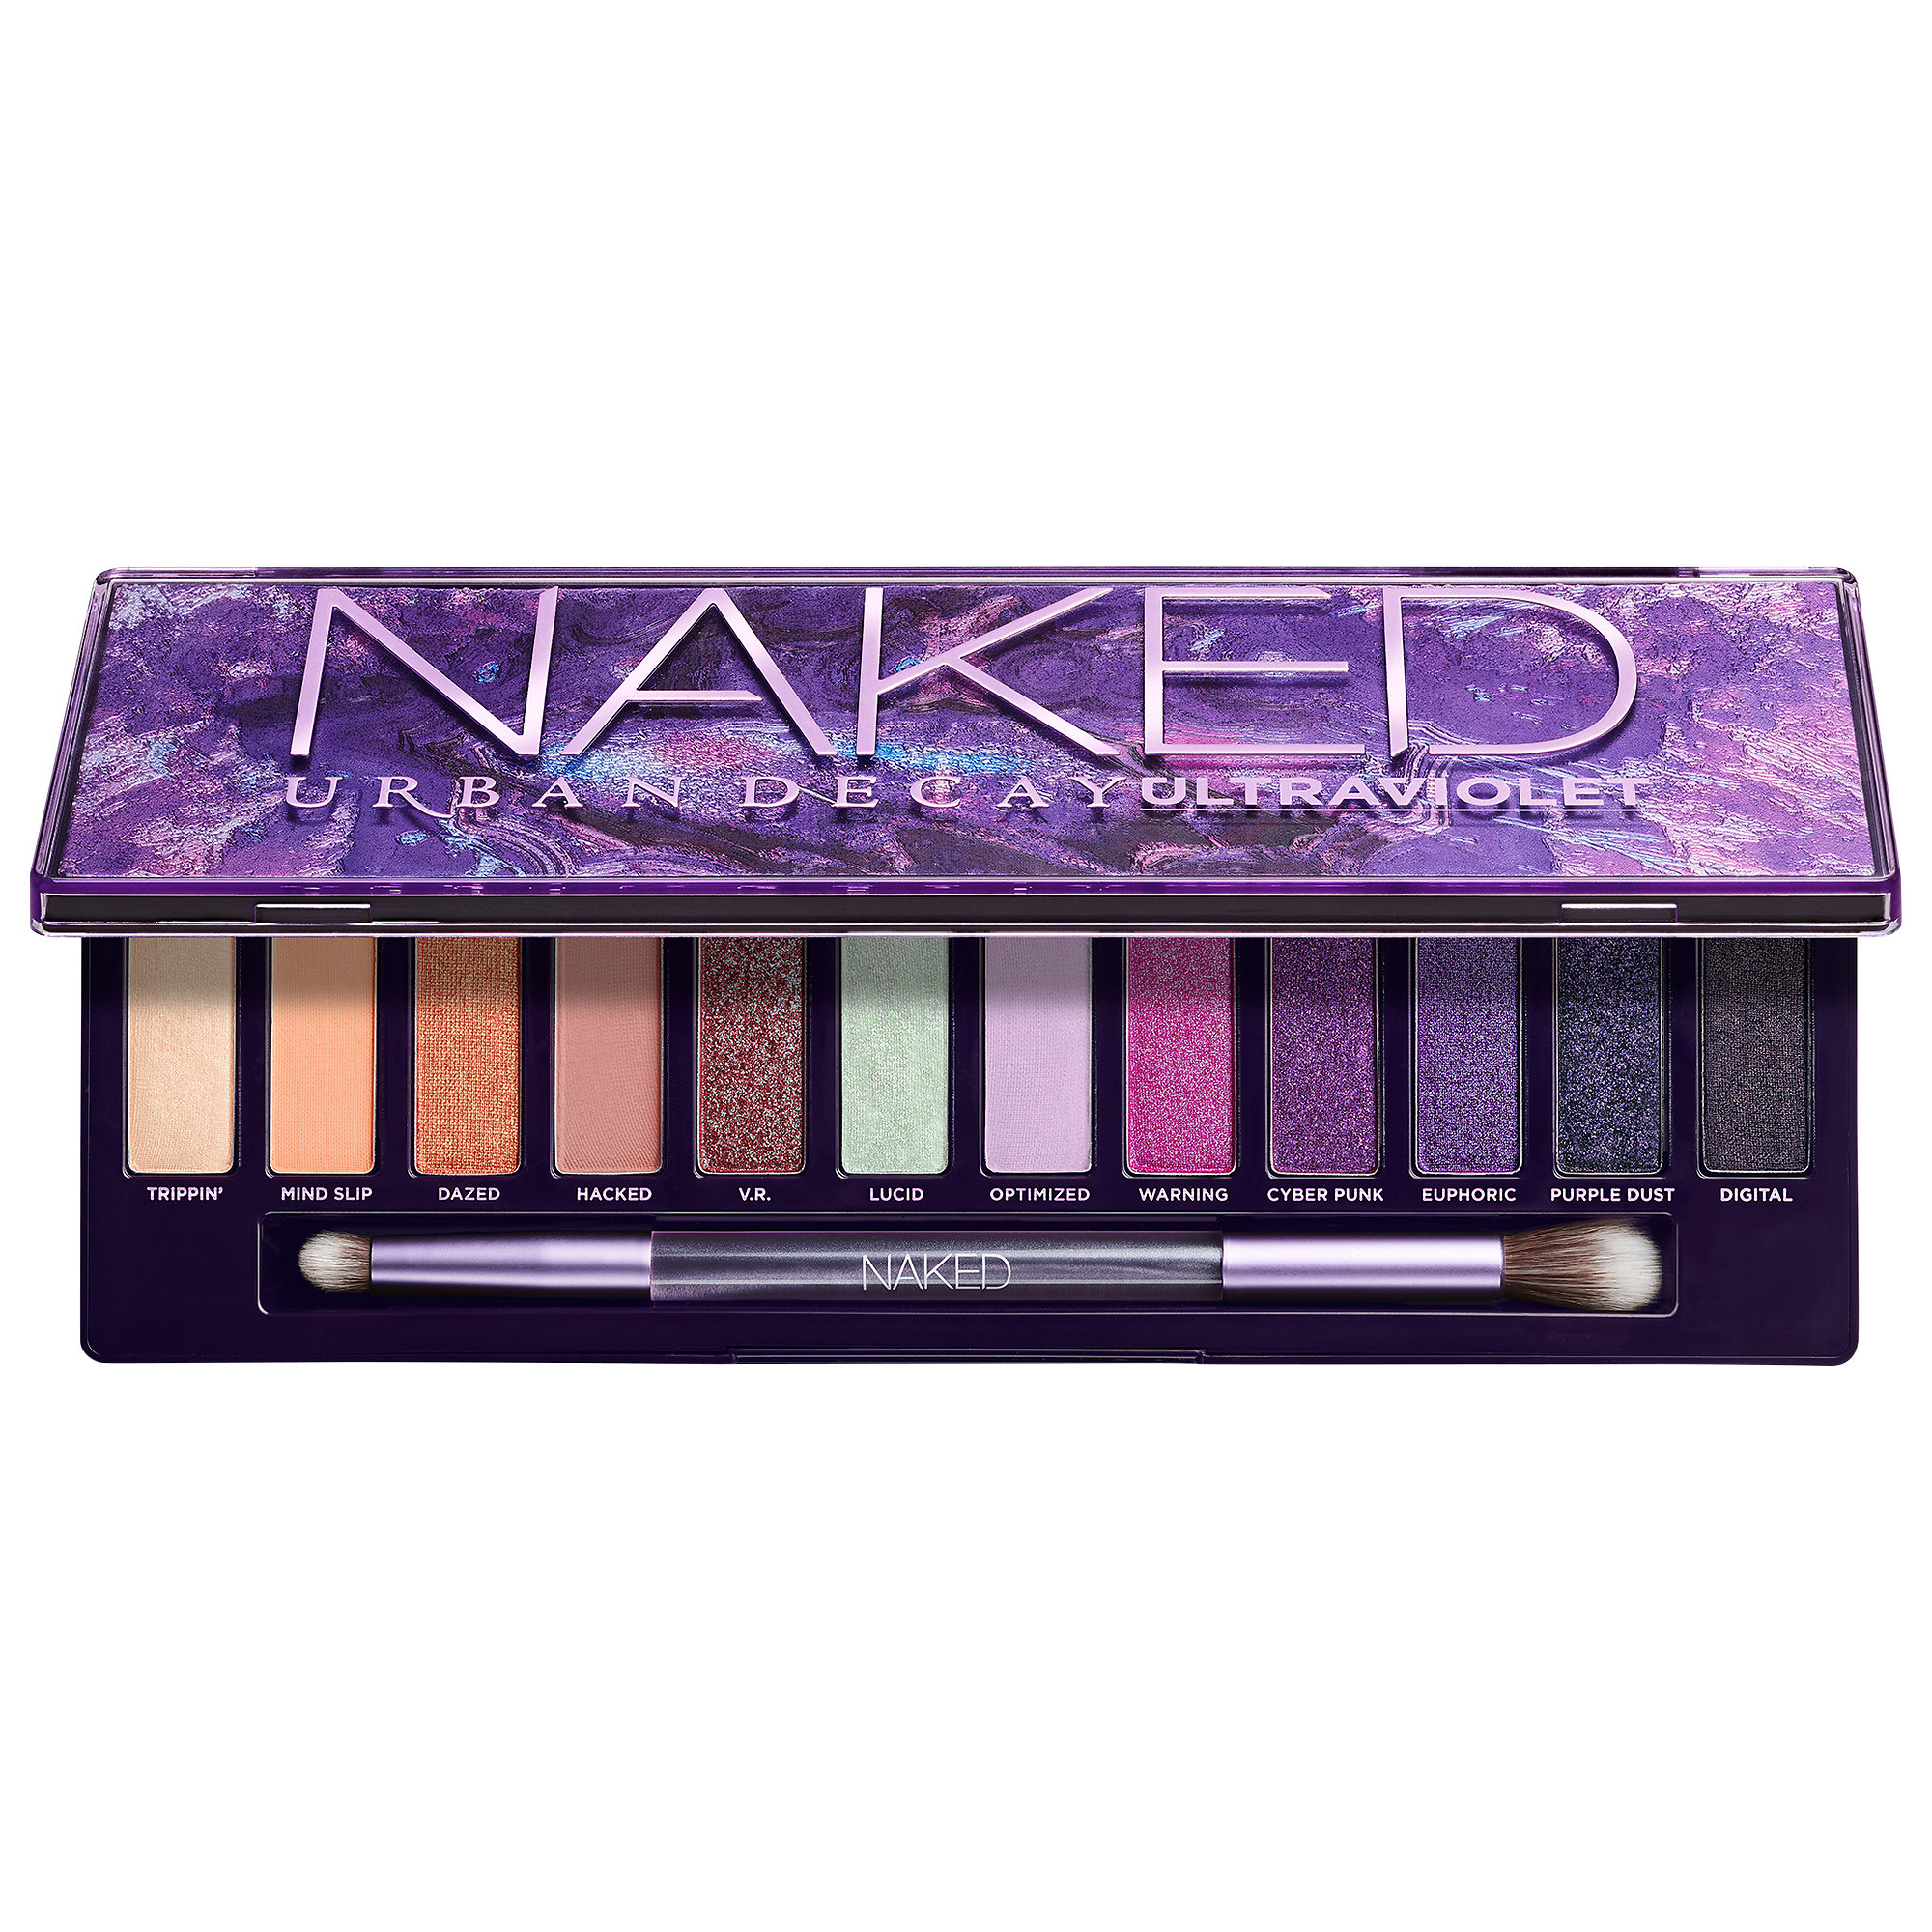 Urban Decay - Naked Ultraviolet Eyeshadow Palette